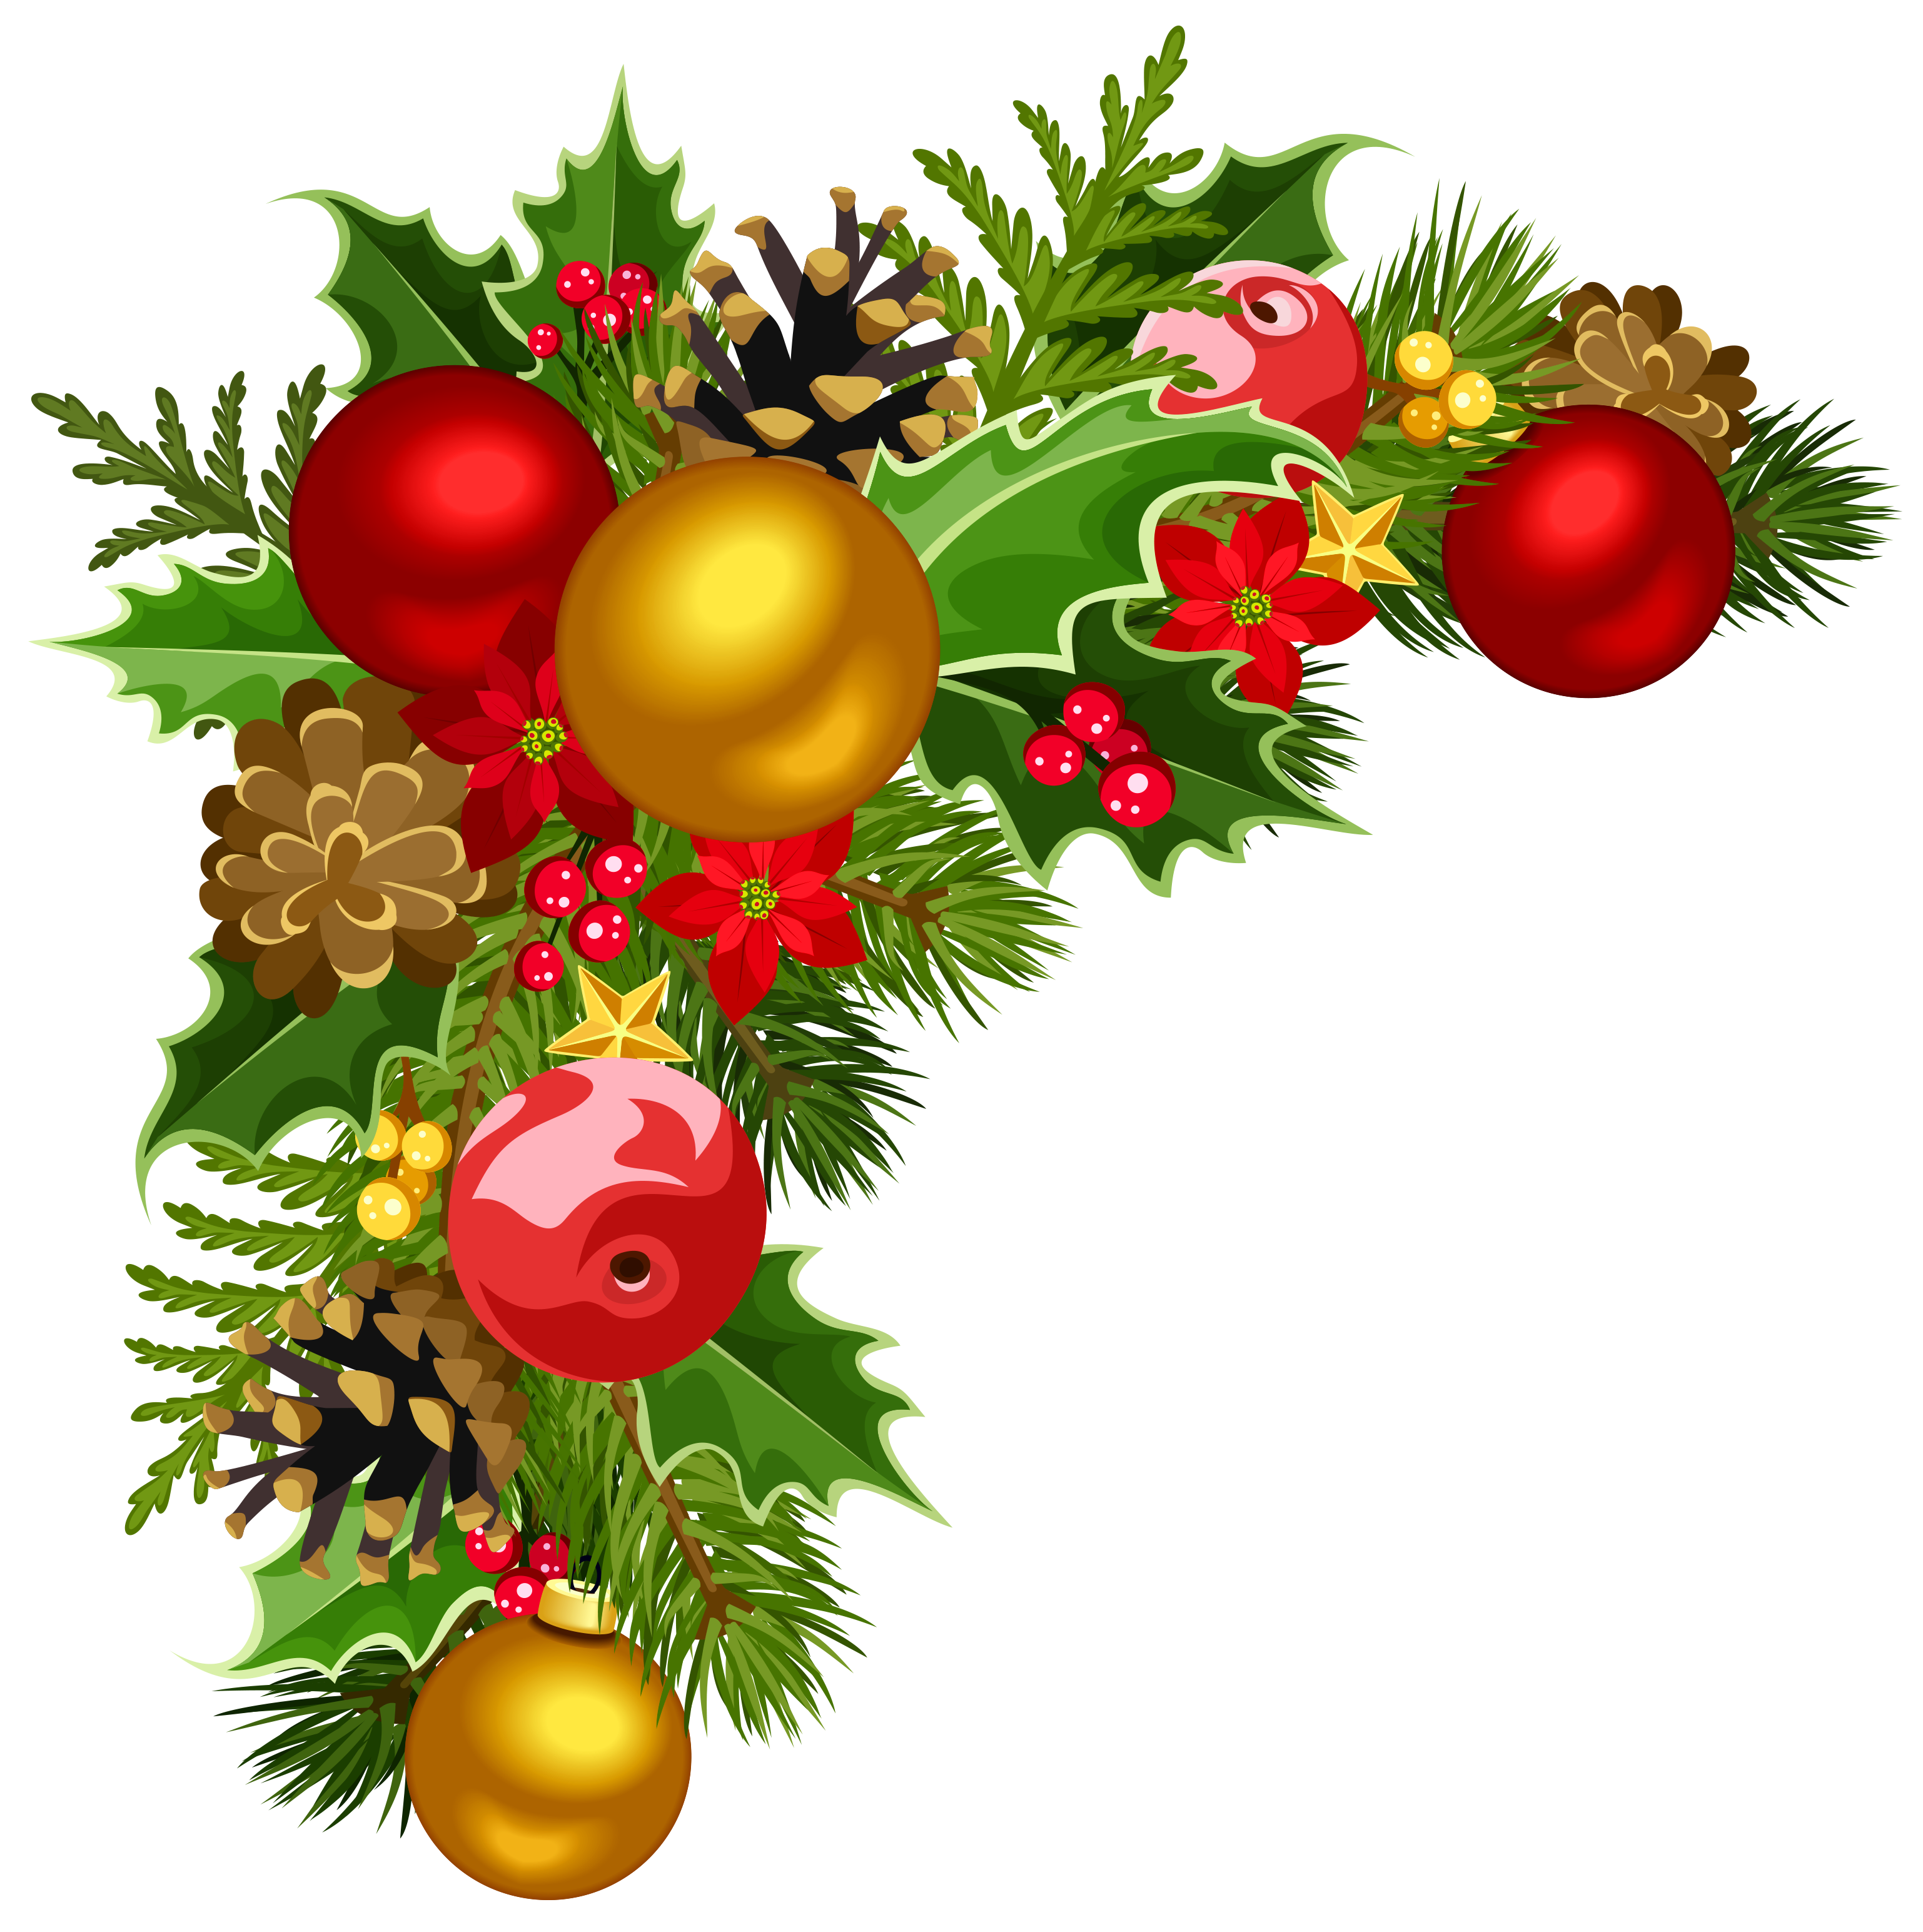 Christmas Decorations Clipart u2013 Happy Holidays!